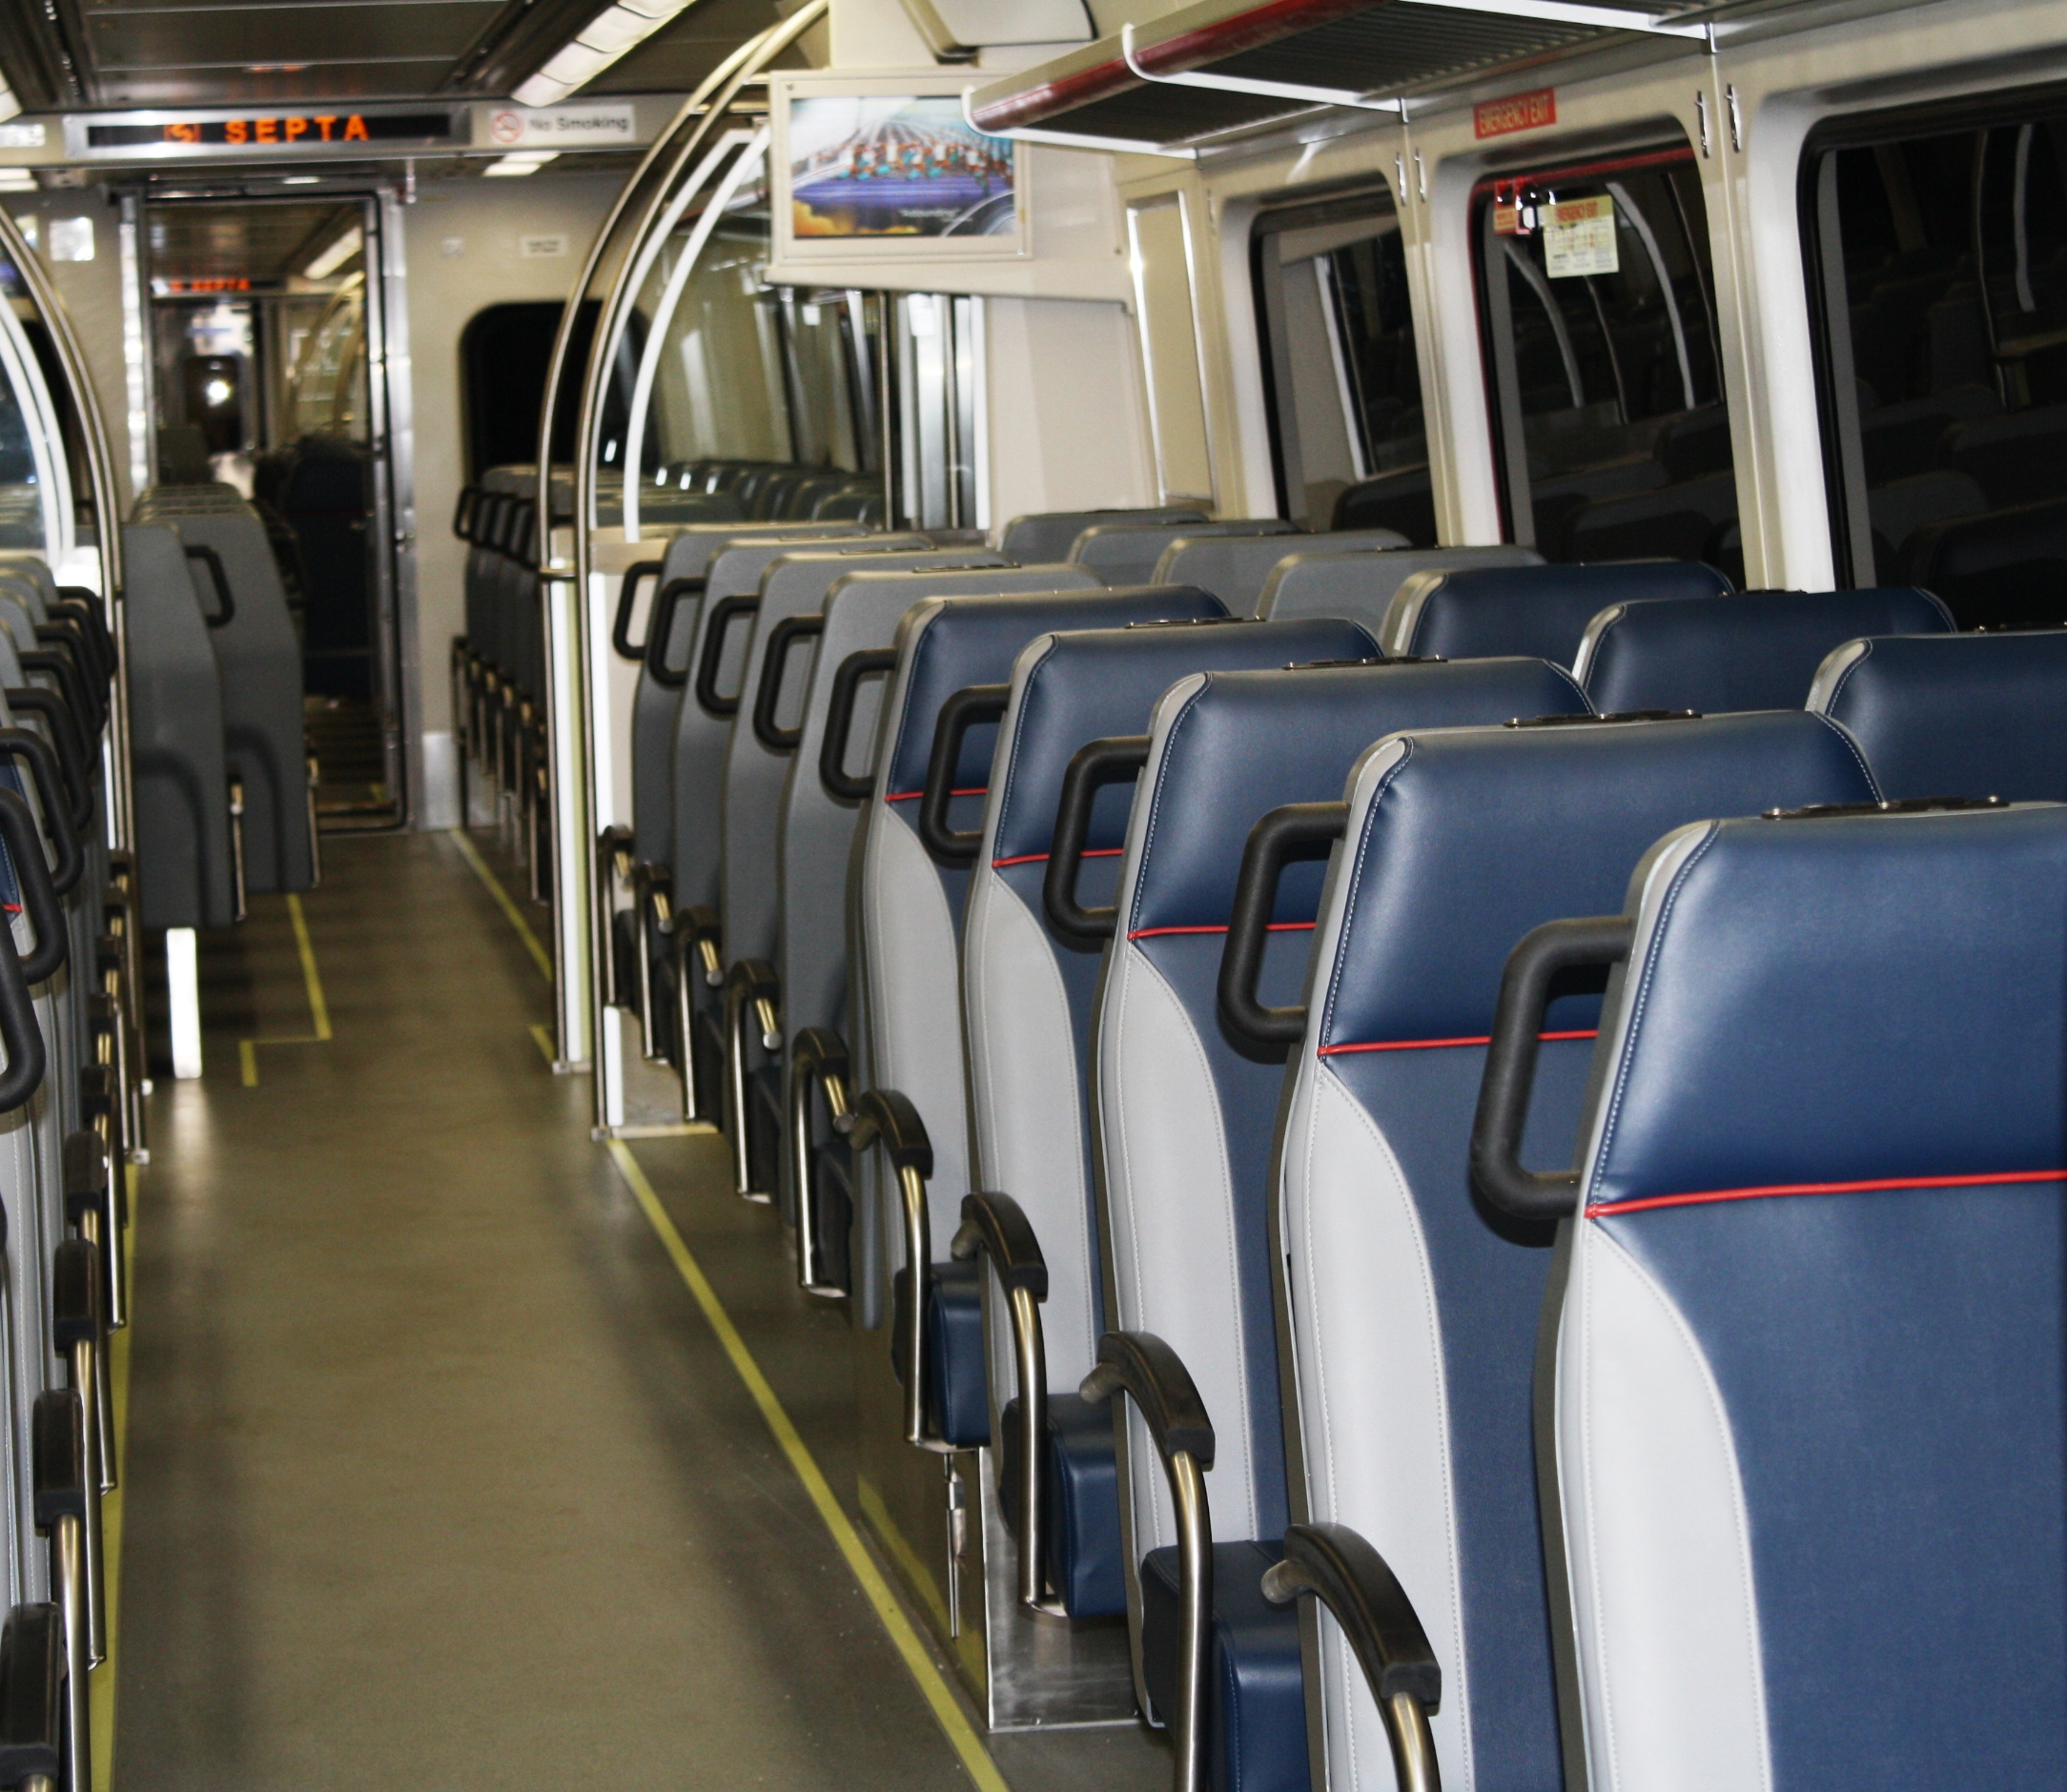 The Silverliner Vs have 109 seats, 11 fewer than the Silverliner IVs, which had 120 seats. Photo courtesy of SEPTA